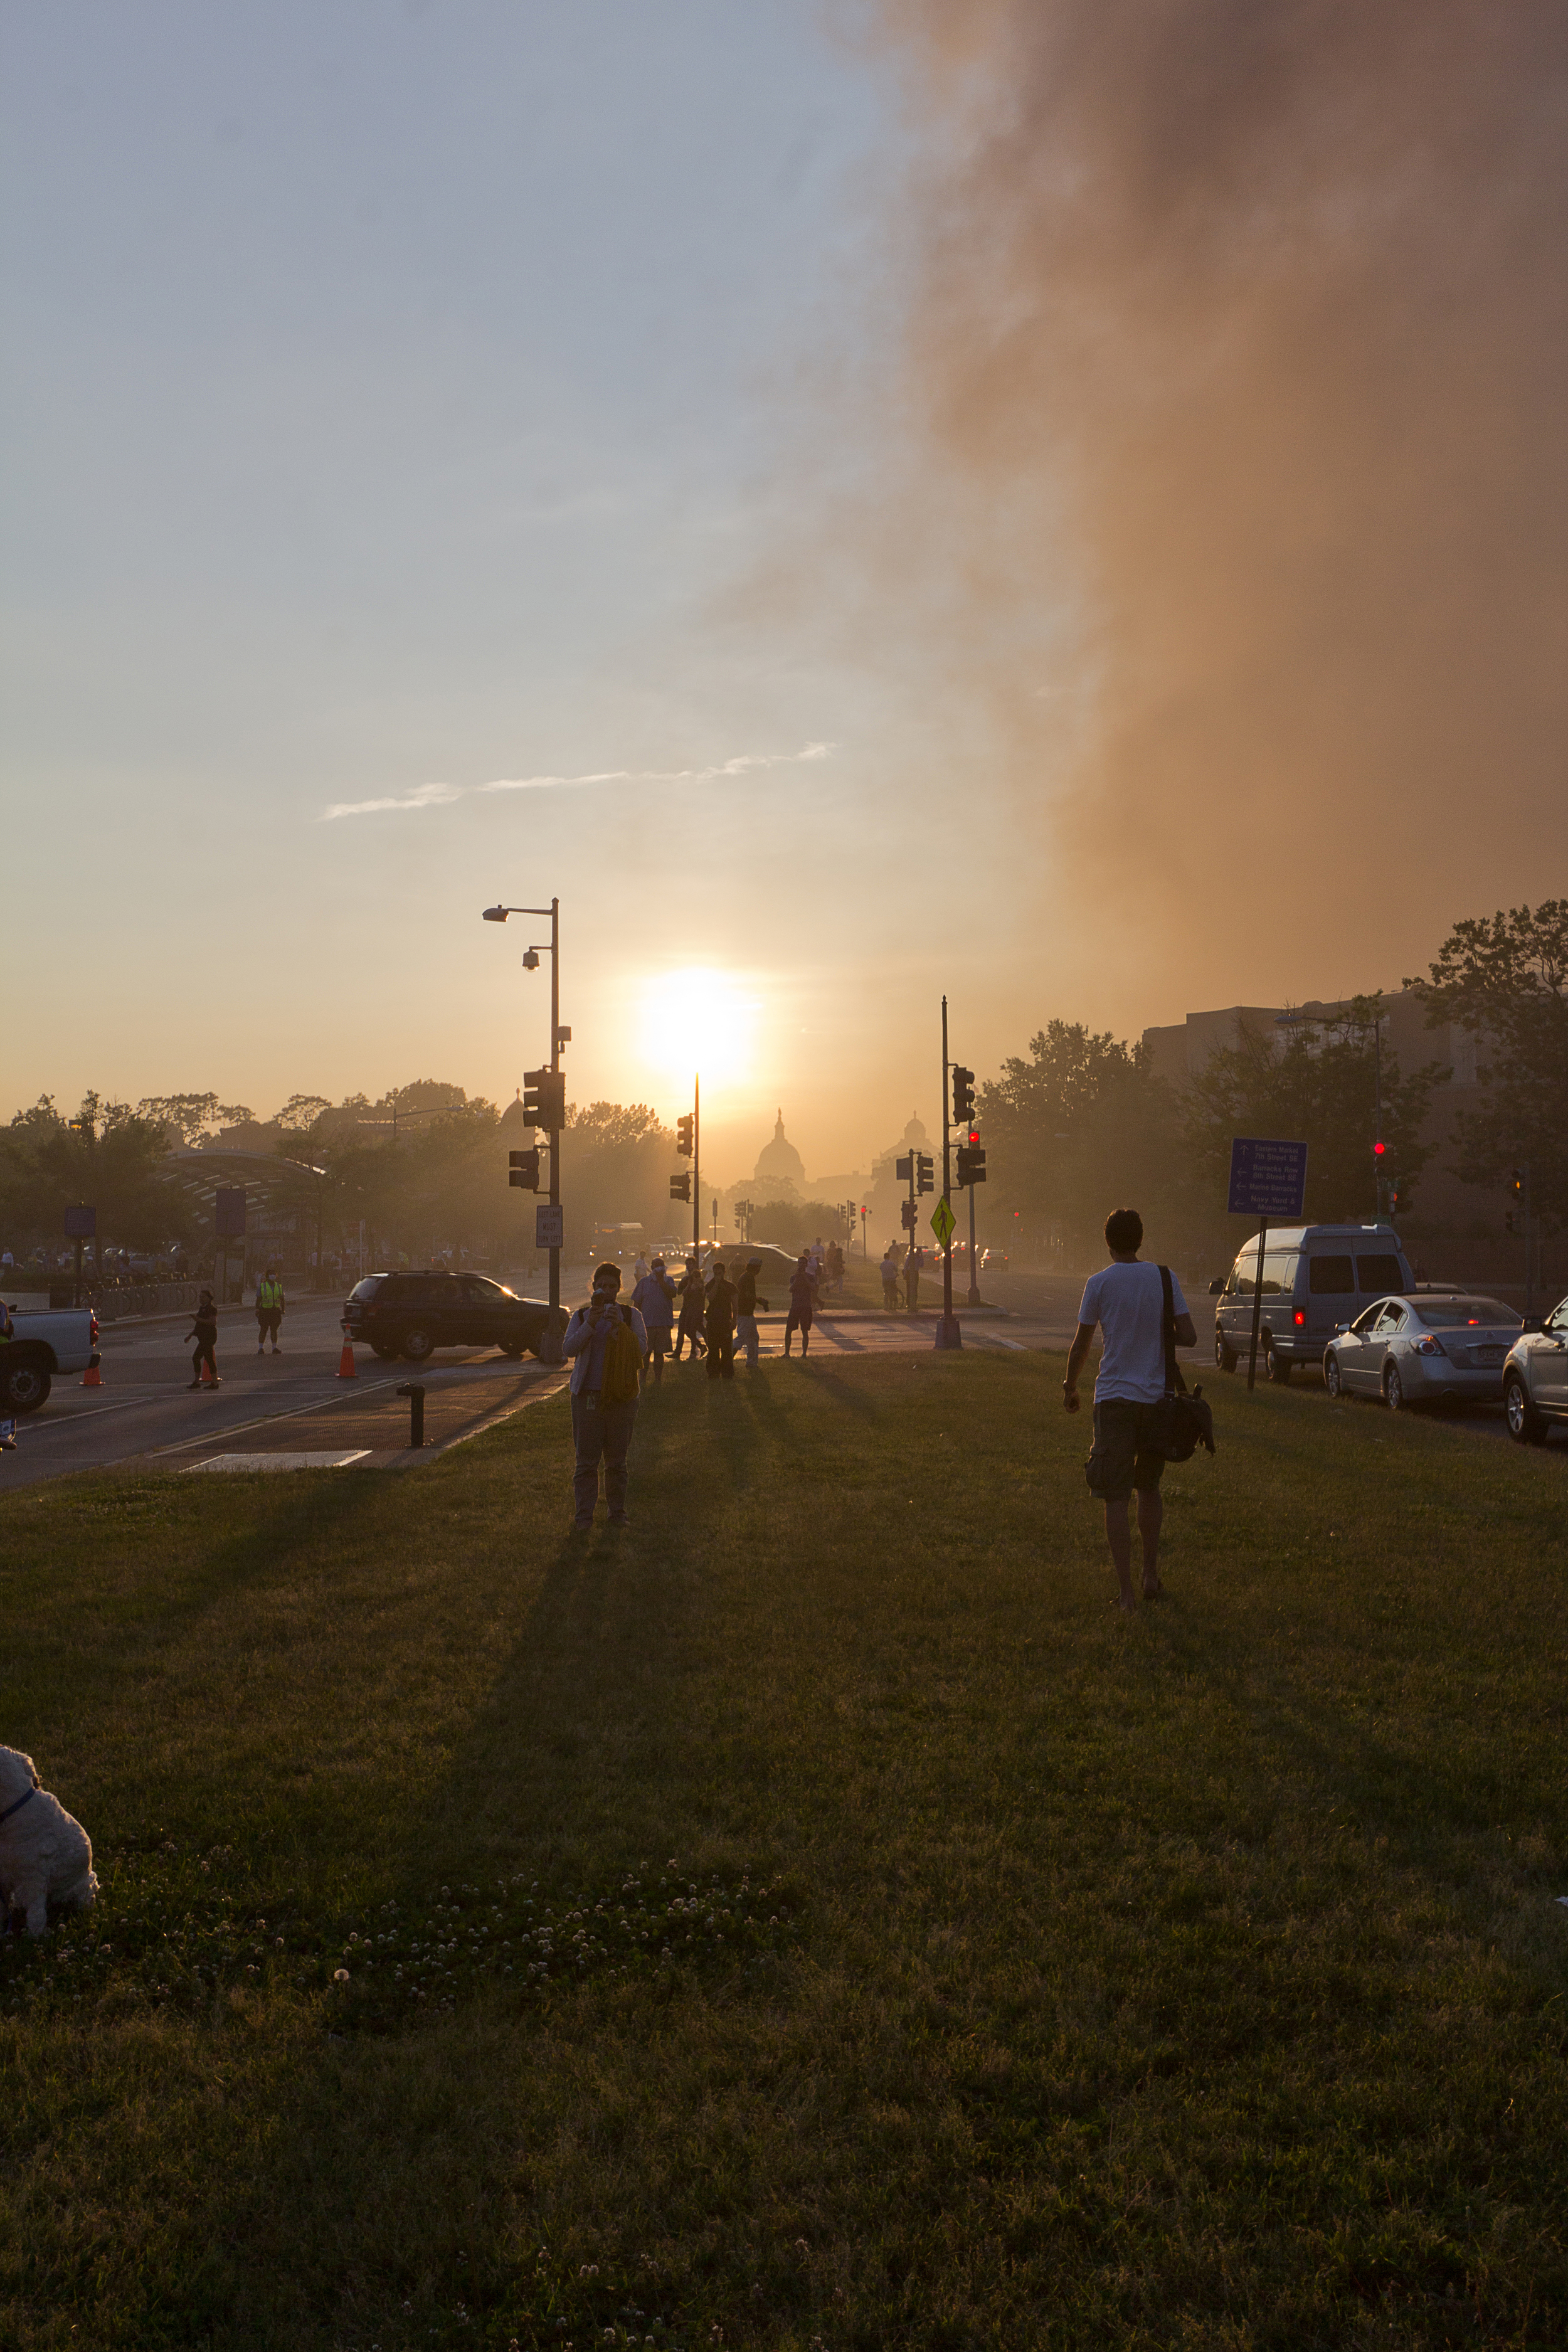 As the wind started to shift, the smoke began to clear away from Pennsylvania Avenue anddispersehigher up in the air.